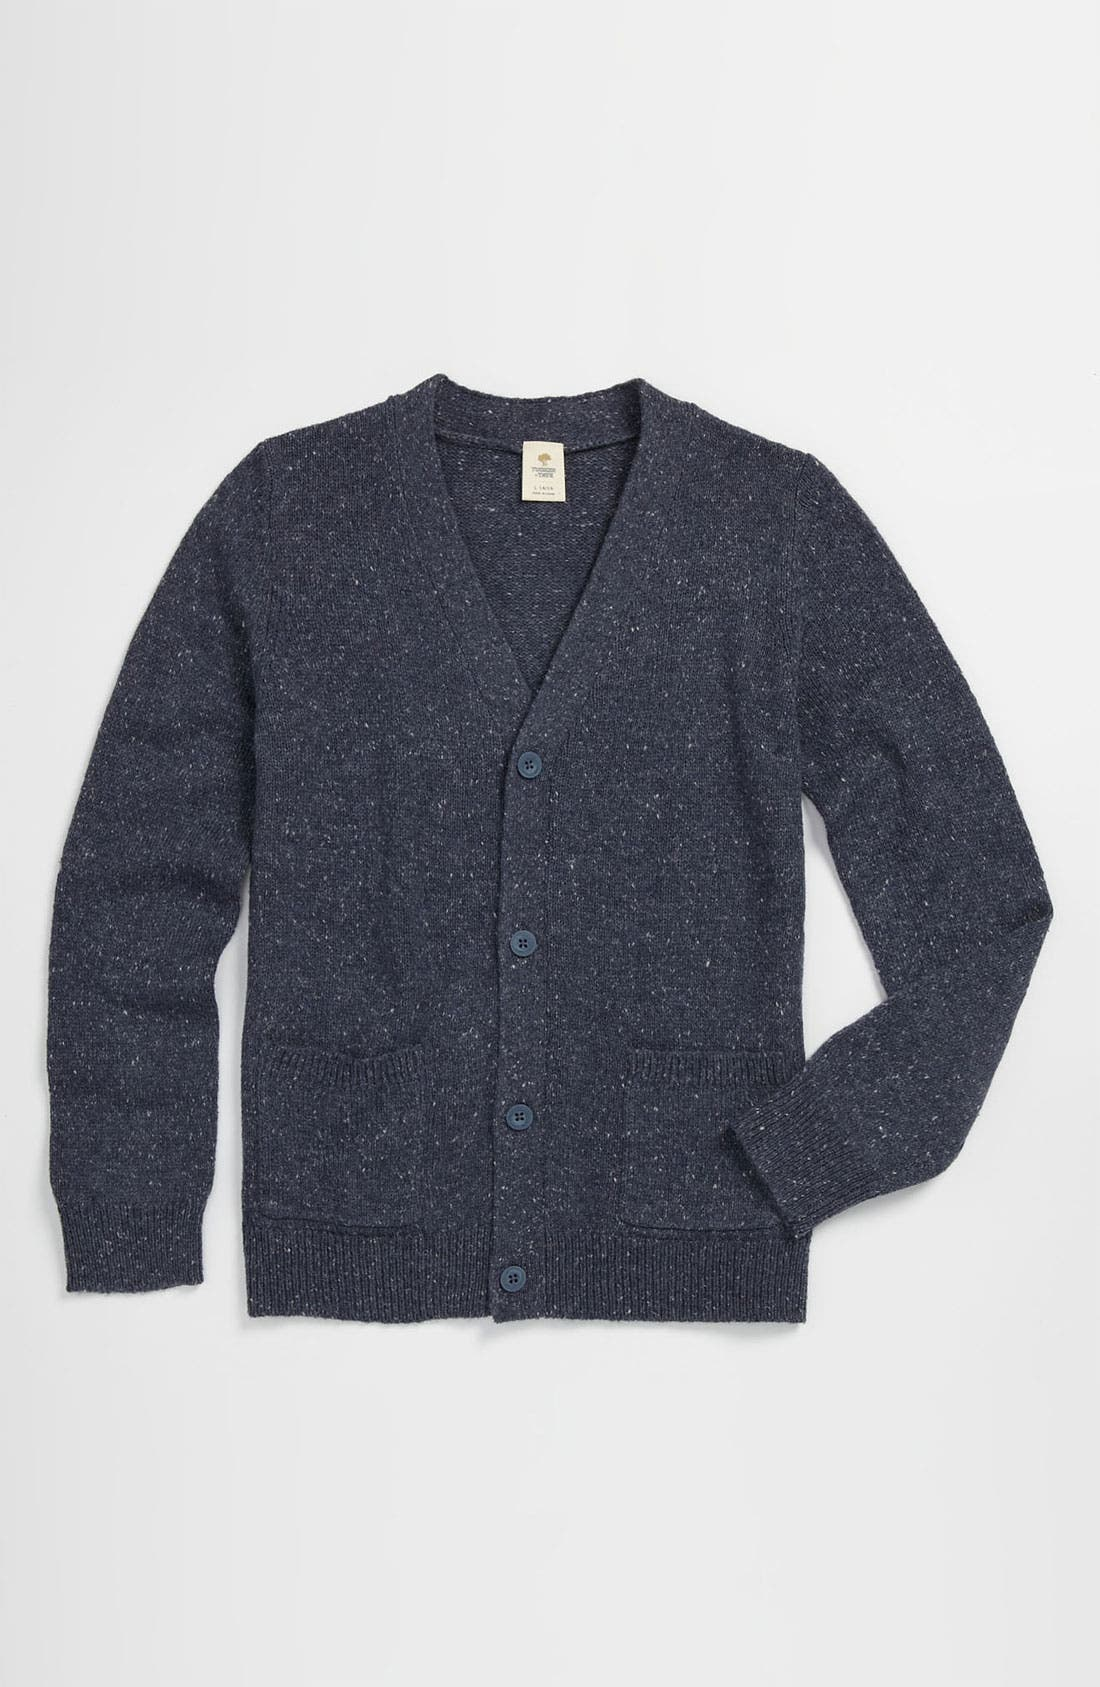 Main Image - Tucker + Tate 'Cooper' Cardigan (Big Boys)